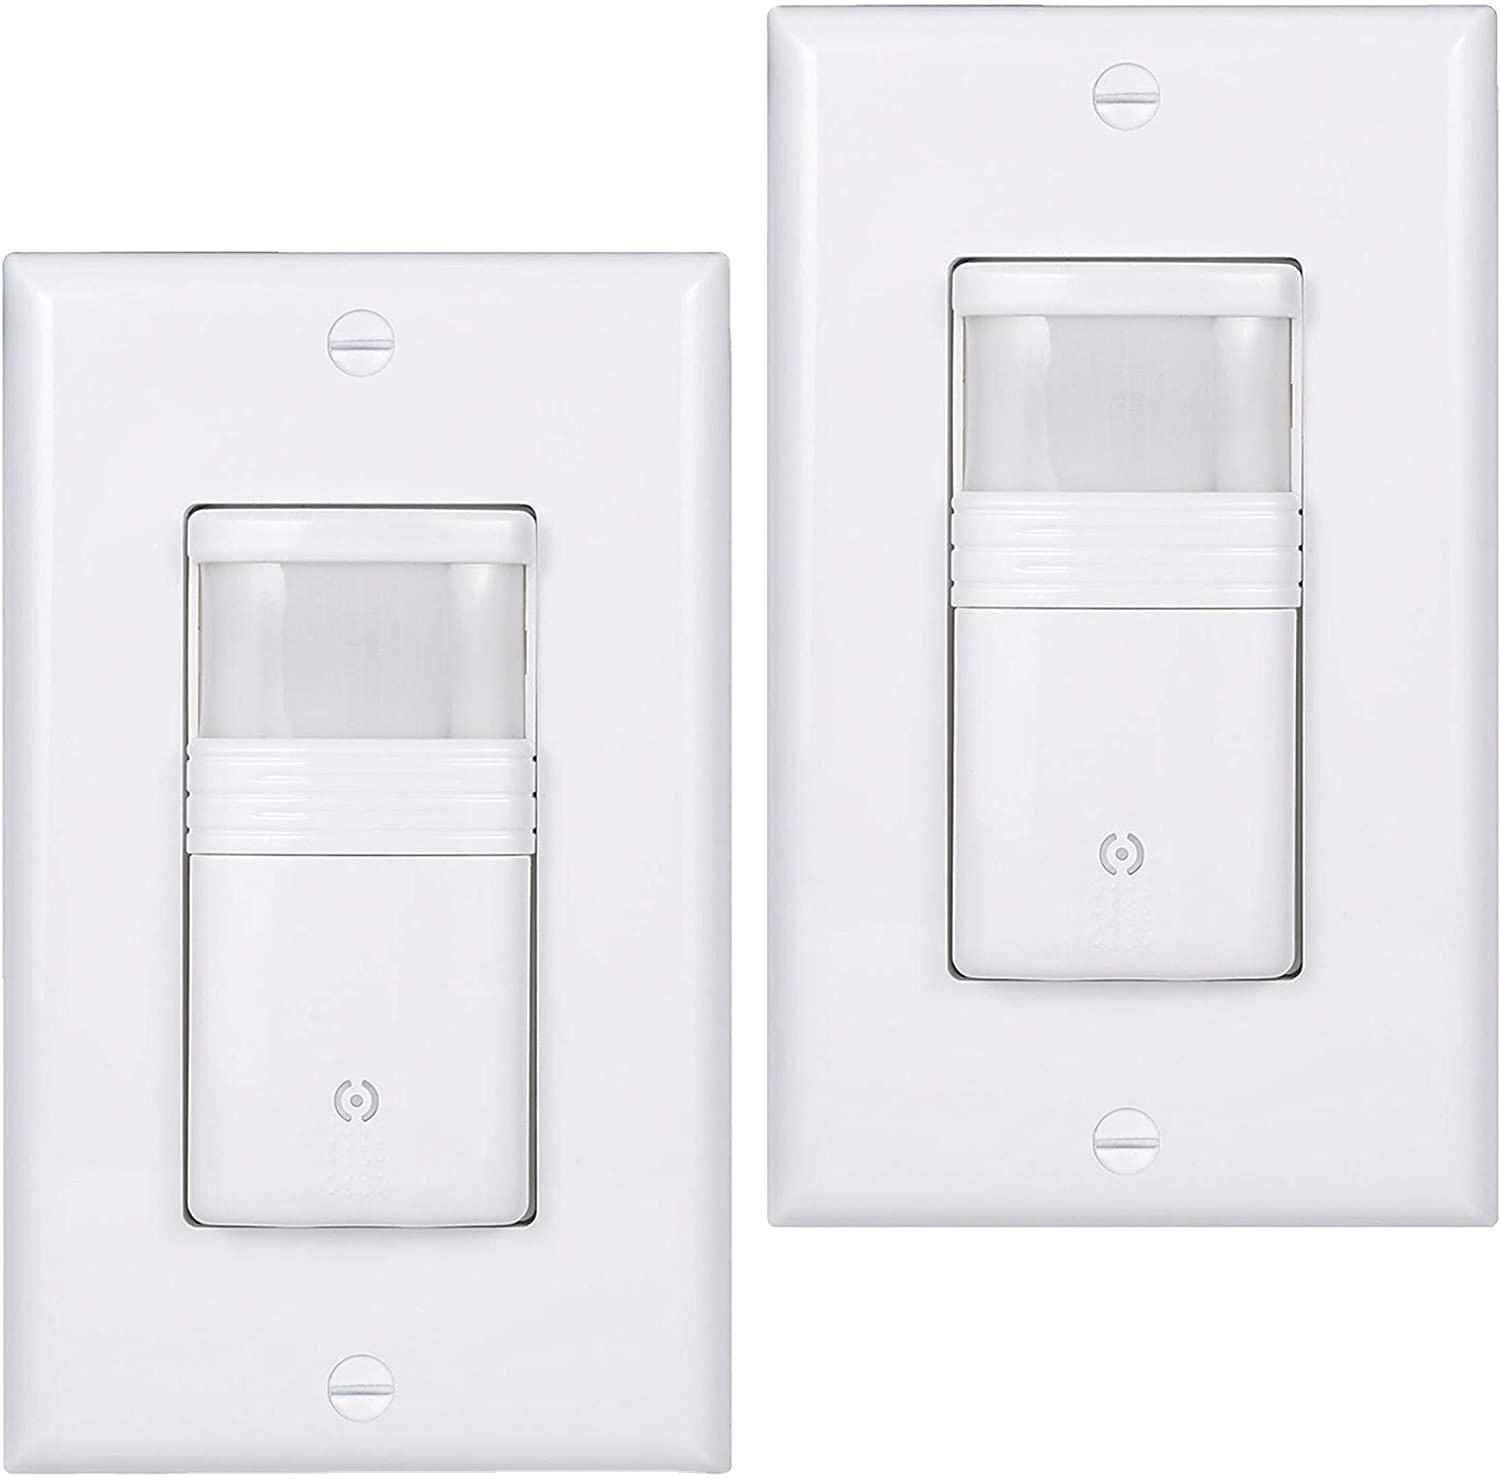 American Sensor Light Switch, PIR Infrared Motion Activated Wall Switch, Single Pole for CFL/LED/Incandescent Bulb, Wal